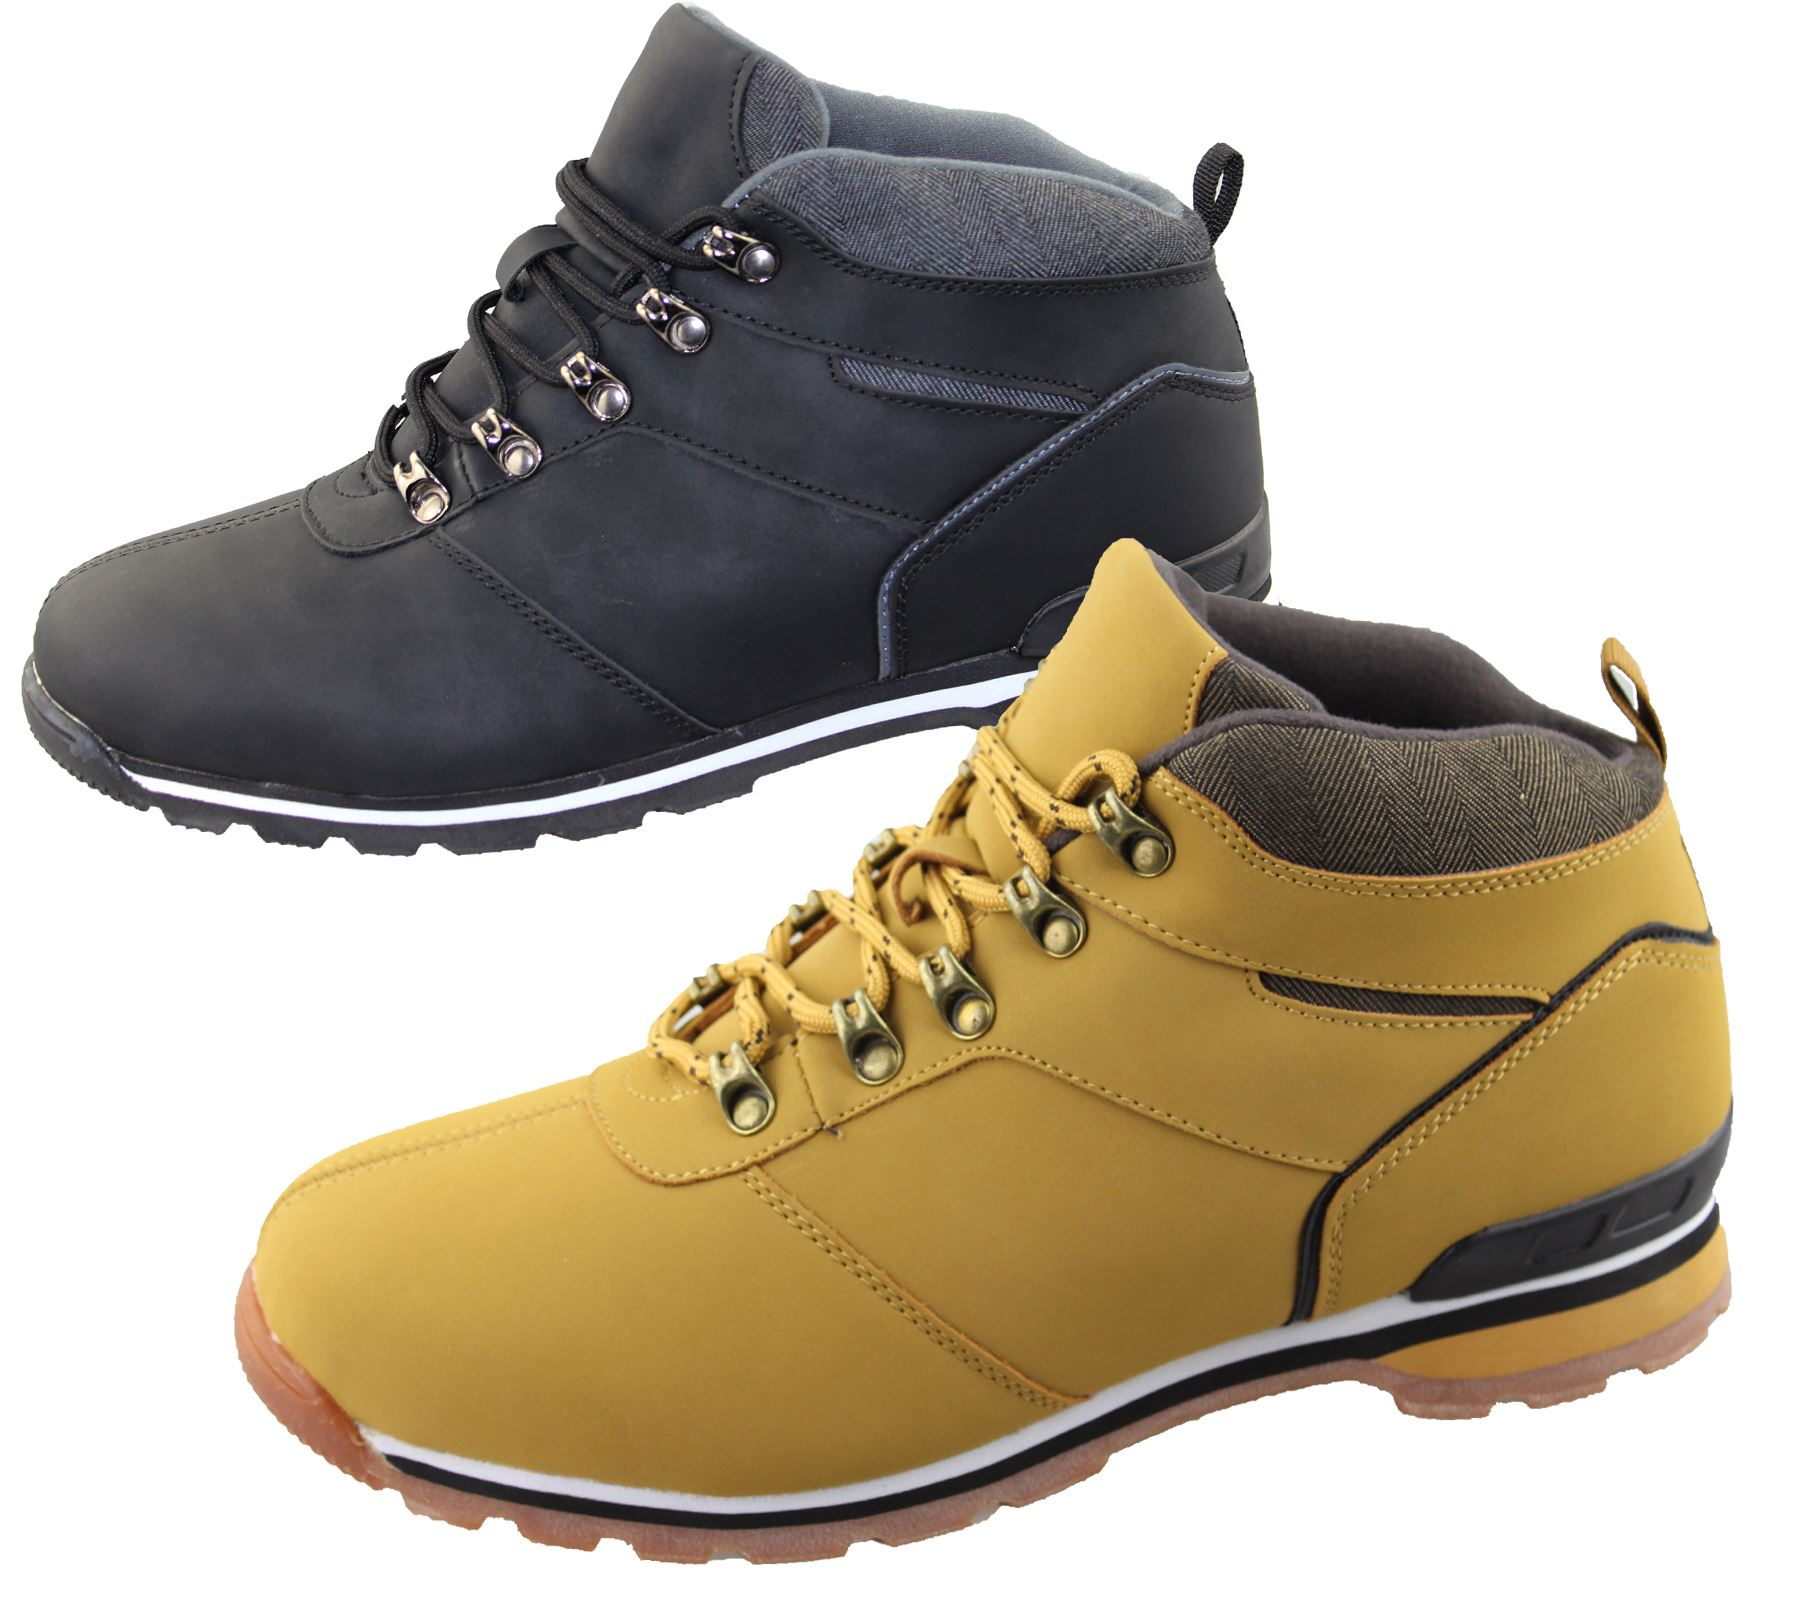 5af74a25d36 Mens Lace Up Boots Winter Combat Hiking Work High Top Ankle Shoes ...